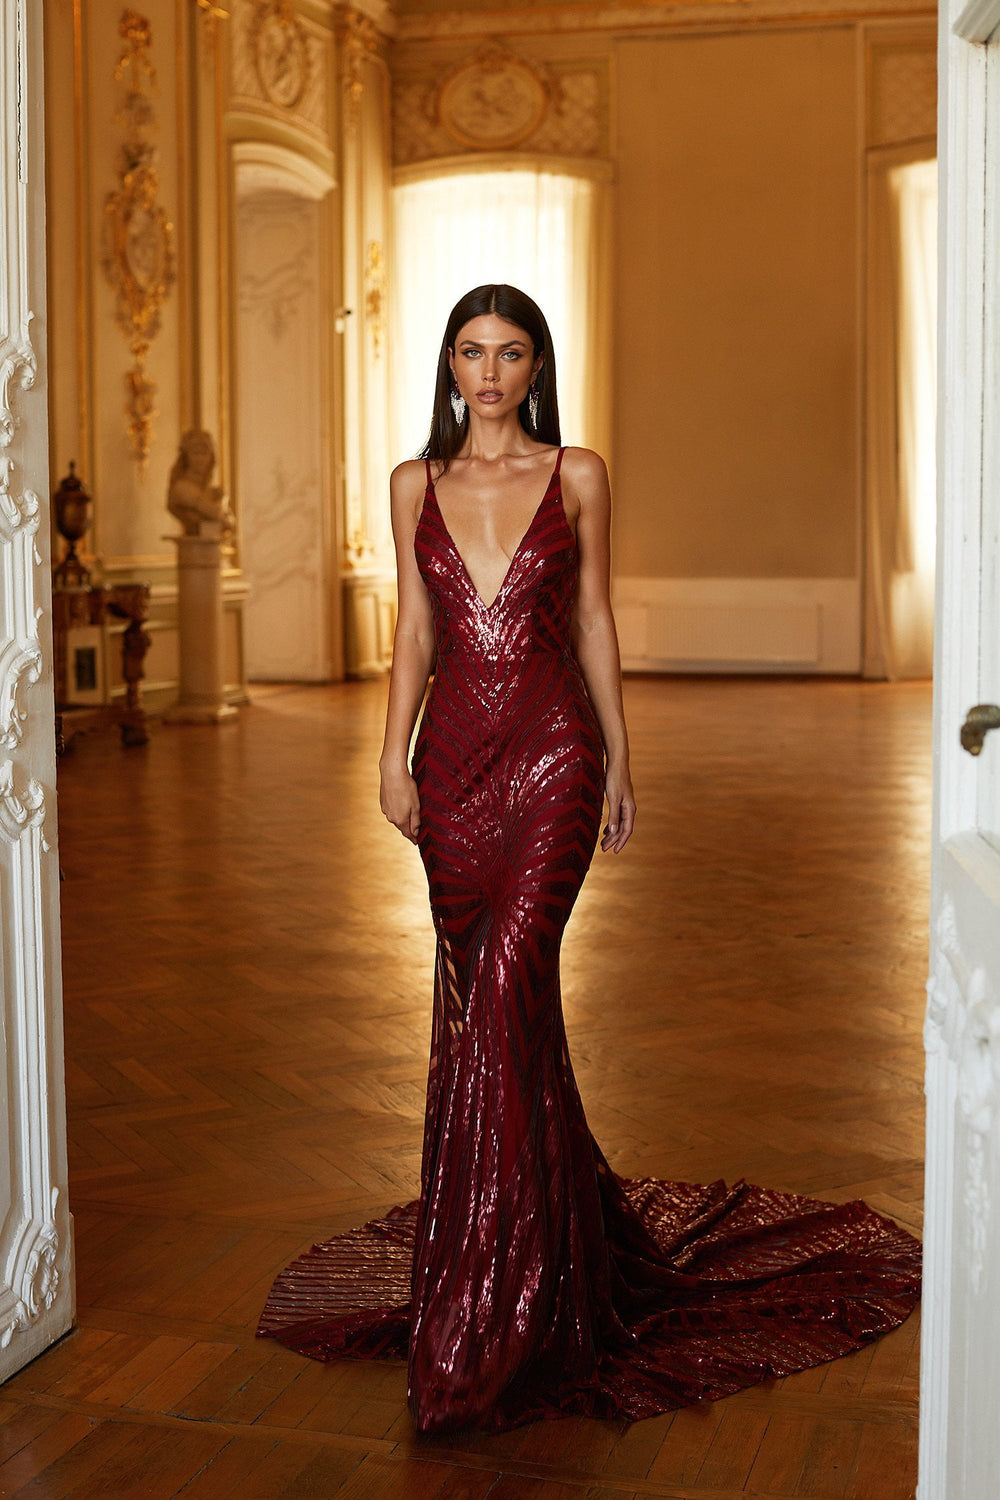 Justina - Burgundy Sequin Gown with Plunge Neck, Low Back & Train